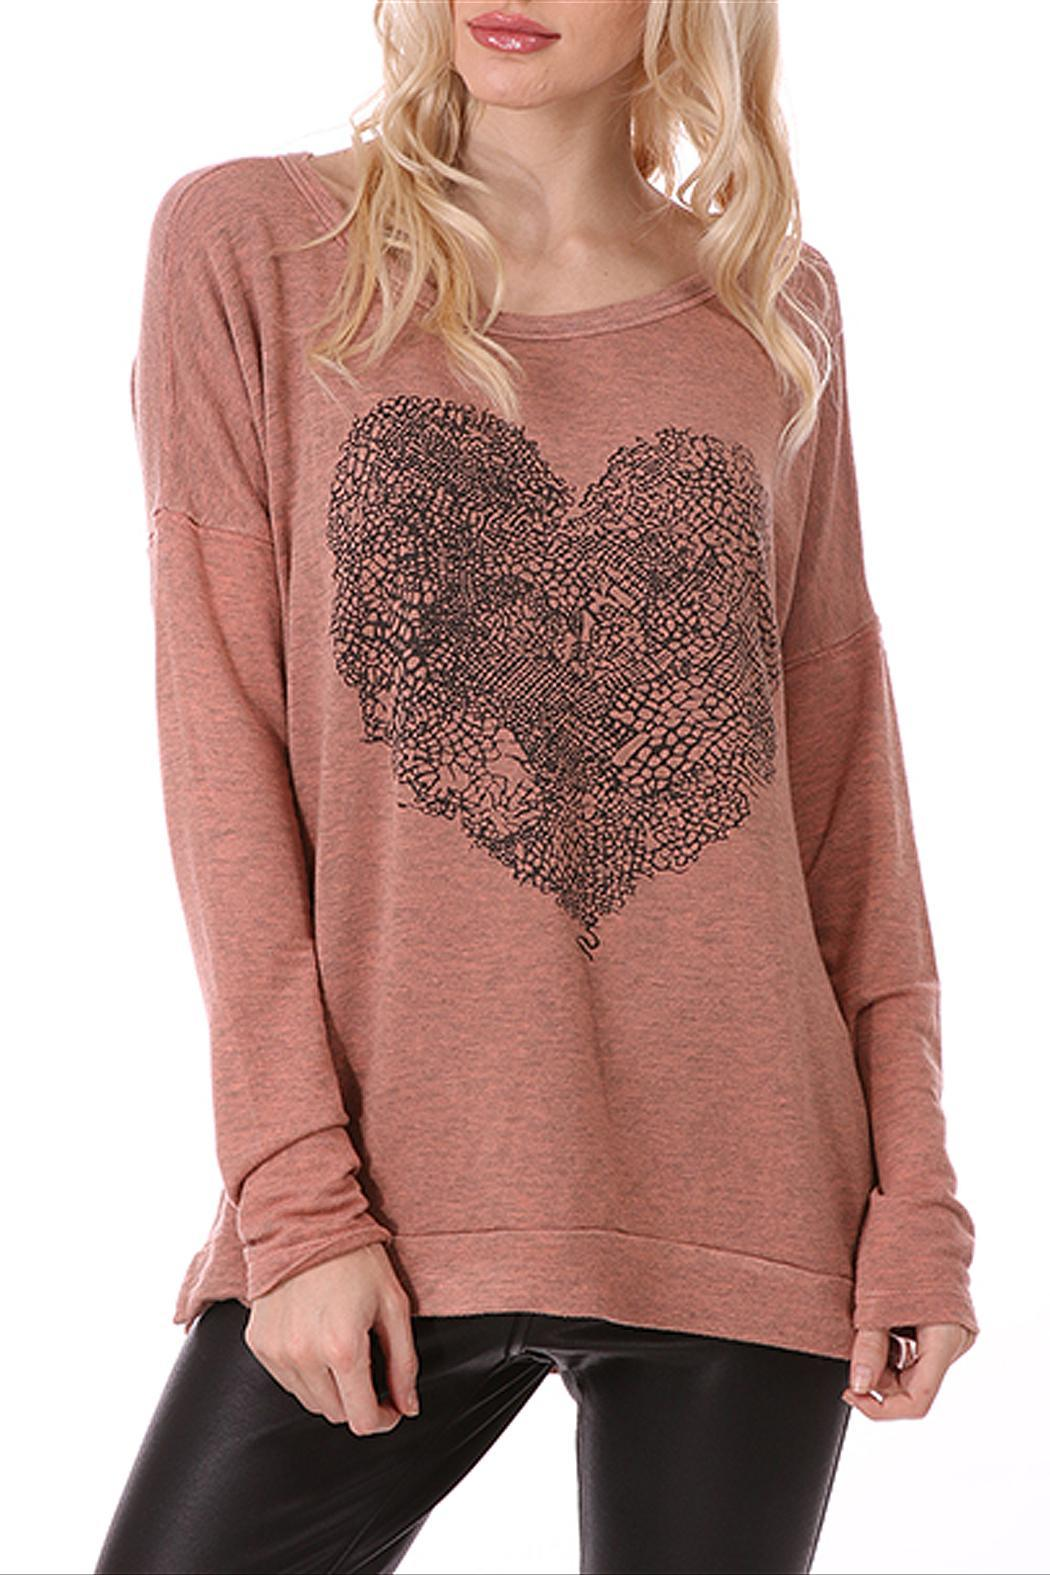 bce588831e7e2 ENTI Heart Sweater Top from California by Purseonality — Shoptiques